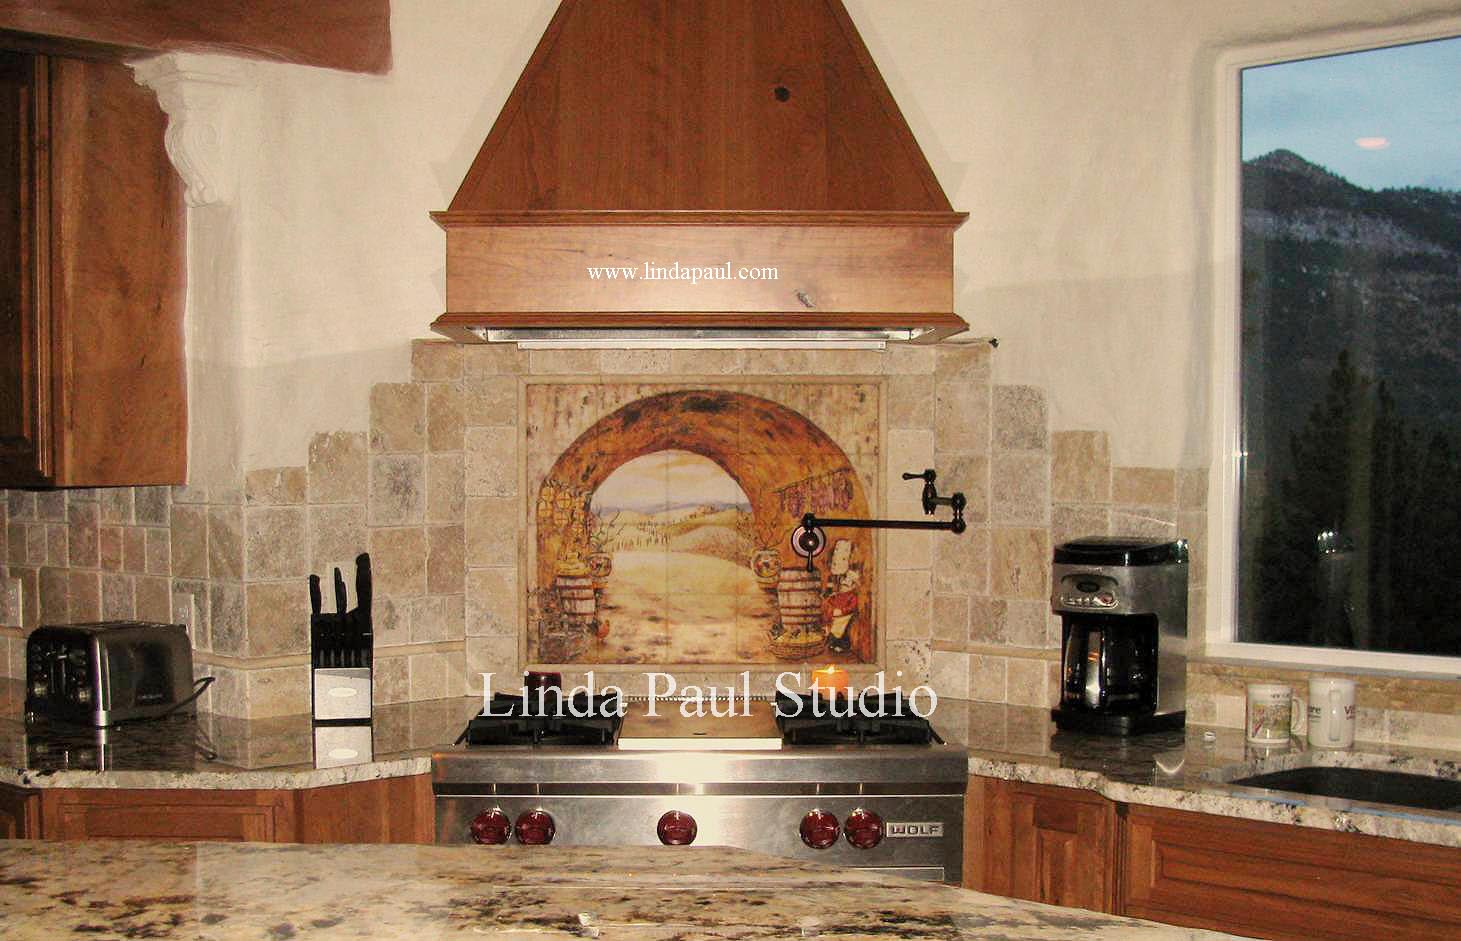 Kitchen backsplash ideas gallery of tile backsplash pictures designs - Kitchen tile backsplash photos ...